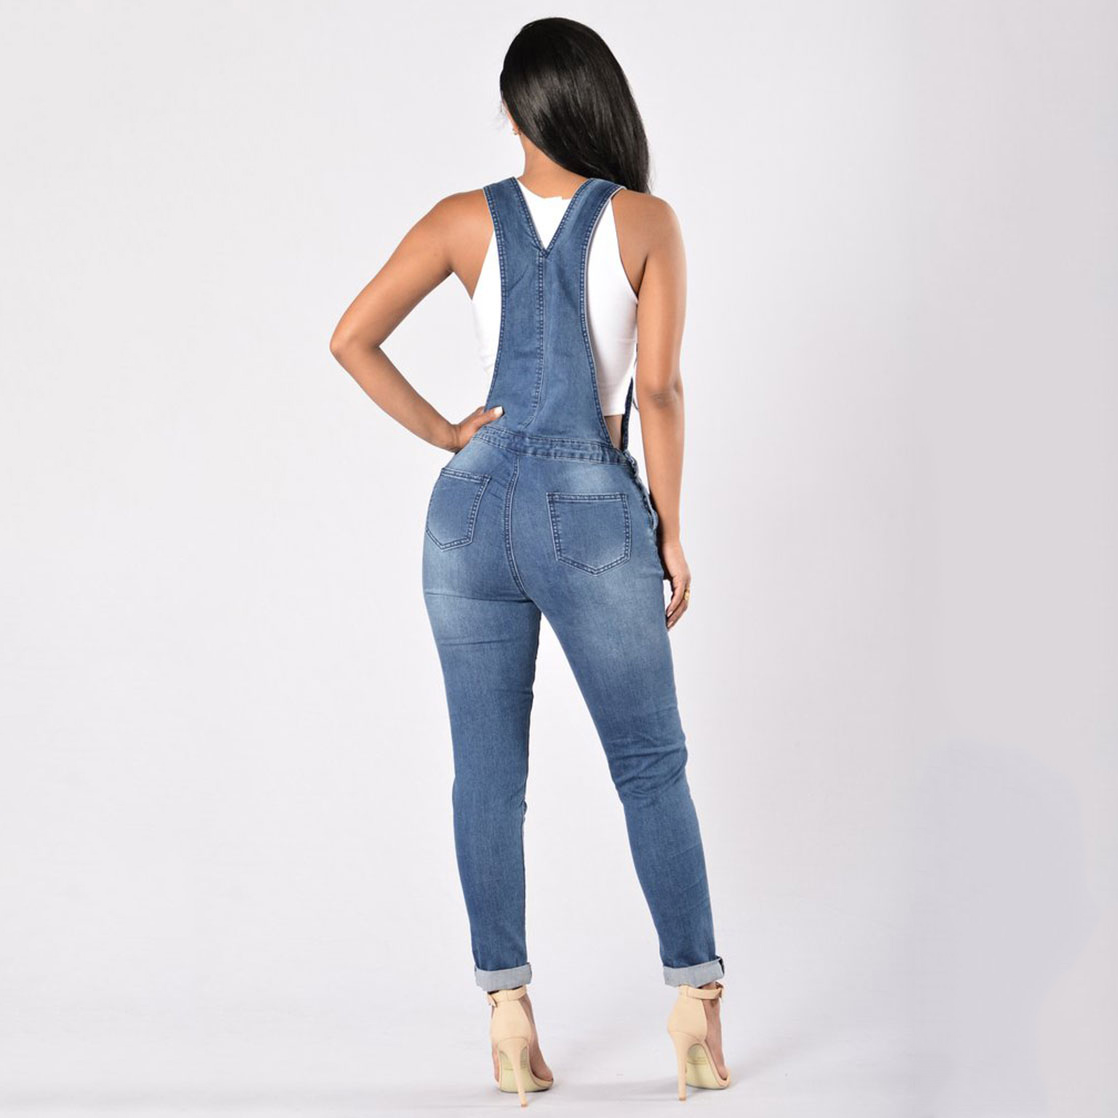 ceb26cb40e89 Hot New 2018 Women Ripped Denim Jumpsuits Women s Overalls Casual Sexy  Romper Plus Size Ladies Blue Denim Jeans Jumpsuit-in Jeans from Women s  Clothing on ...